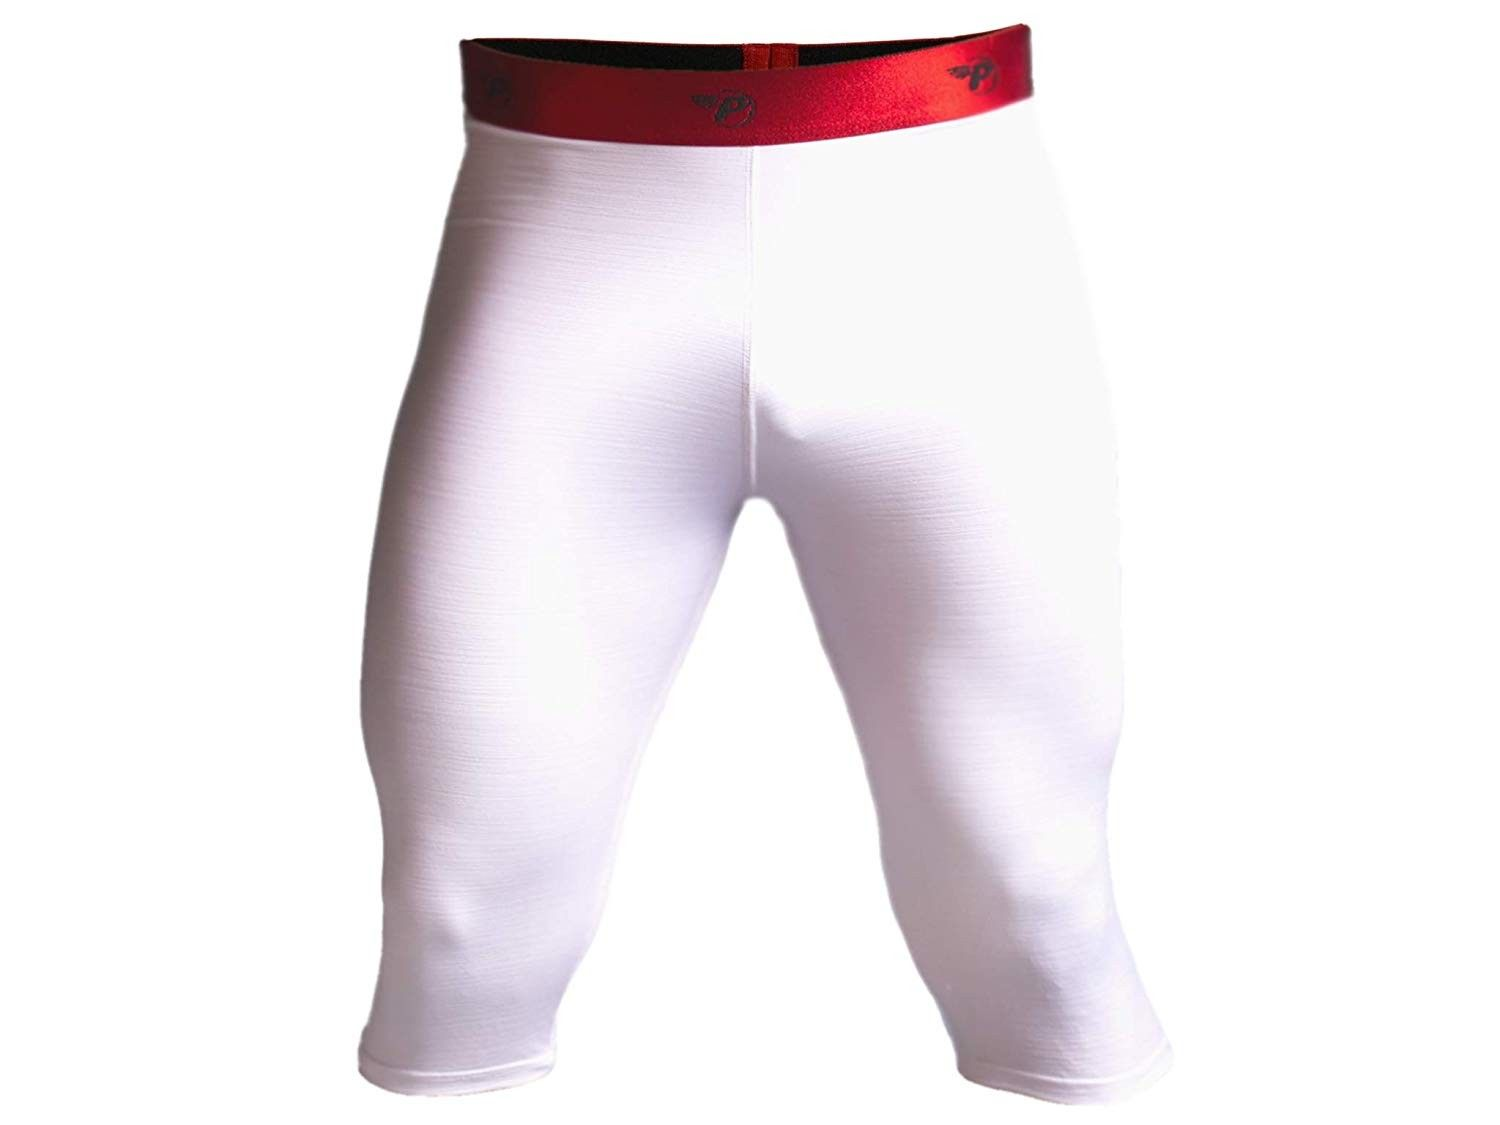 Compression Workout Pants Tights 3/4 Capri Shorts Leggings Quick Dry Running - White & Red Band - C9...